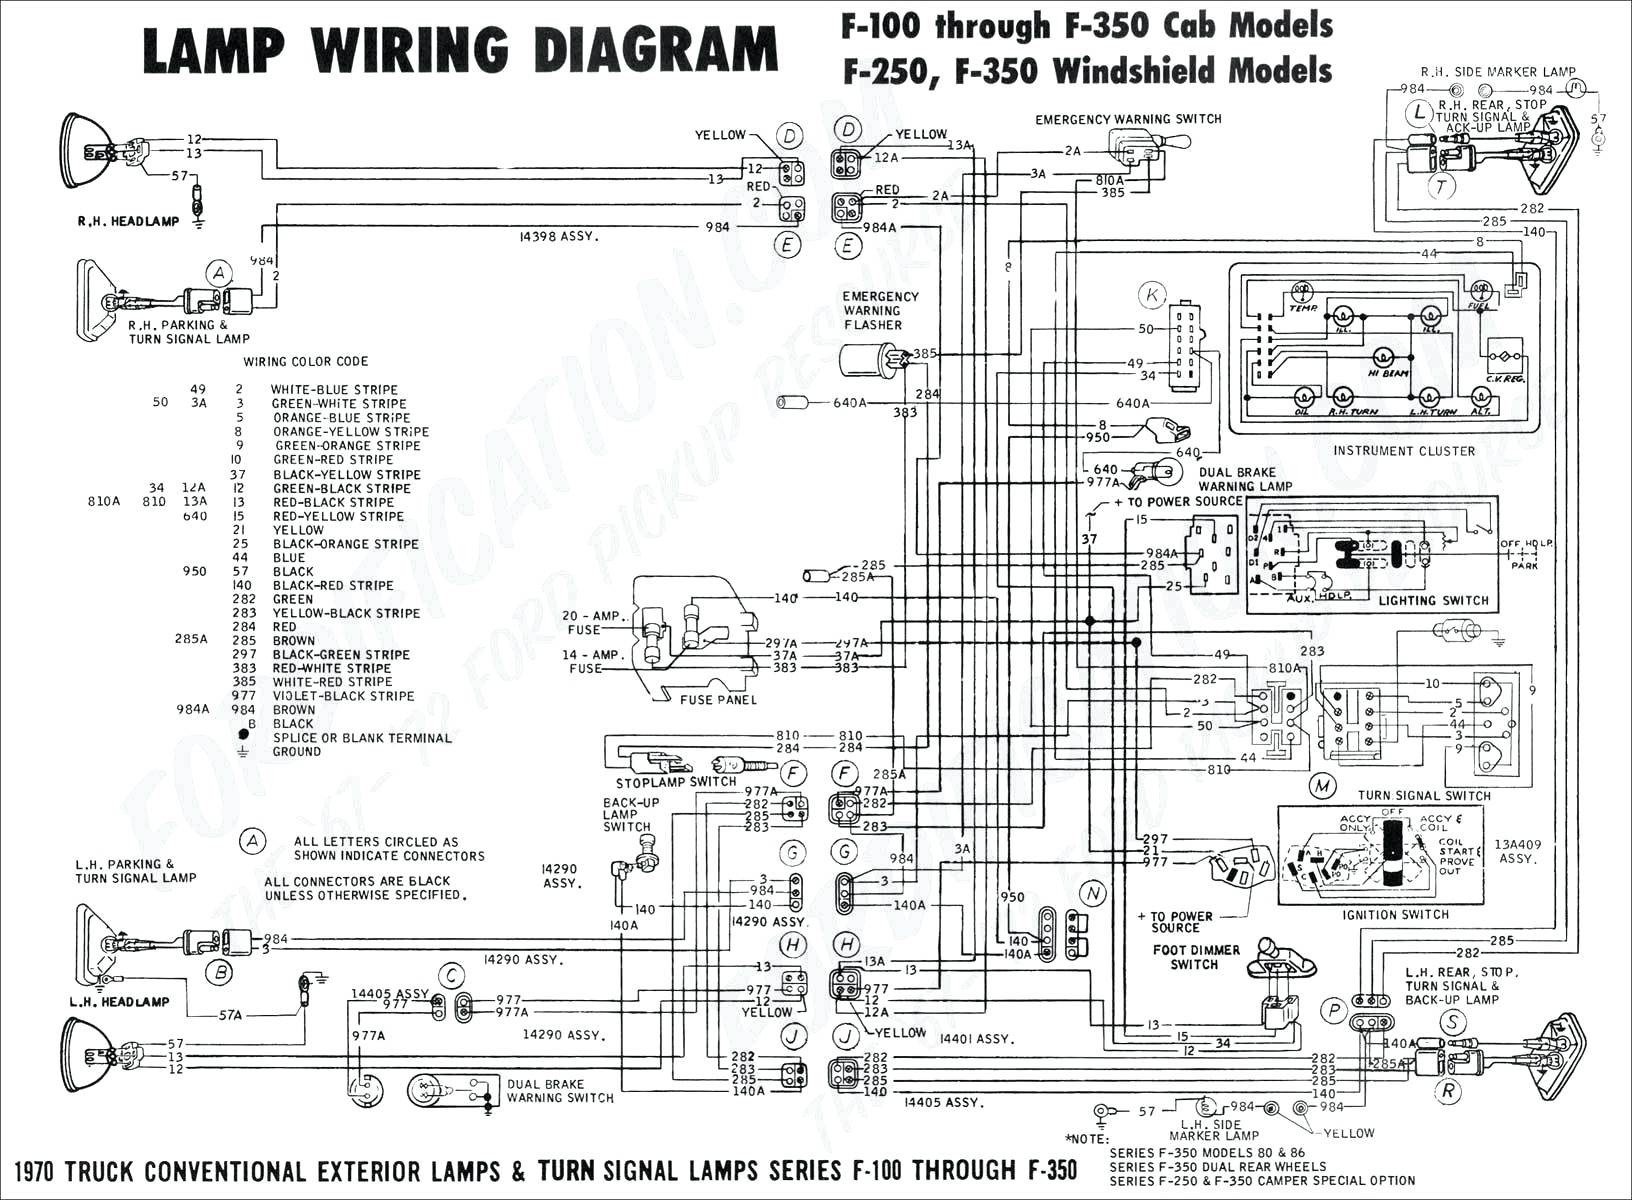 hight resolution of 2500 hd wiring diagram wiring diagram list 2006 chevy 2500hd trailer wiring diagram 2500 hd wiring